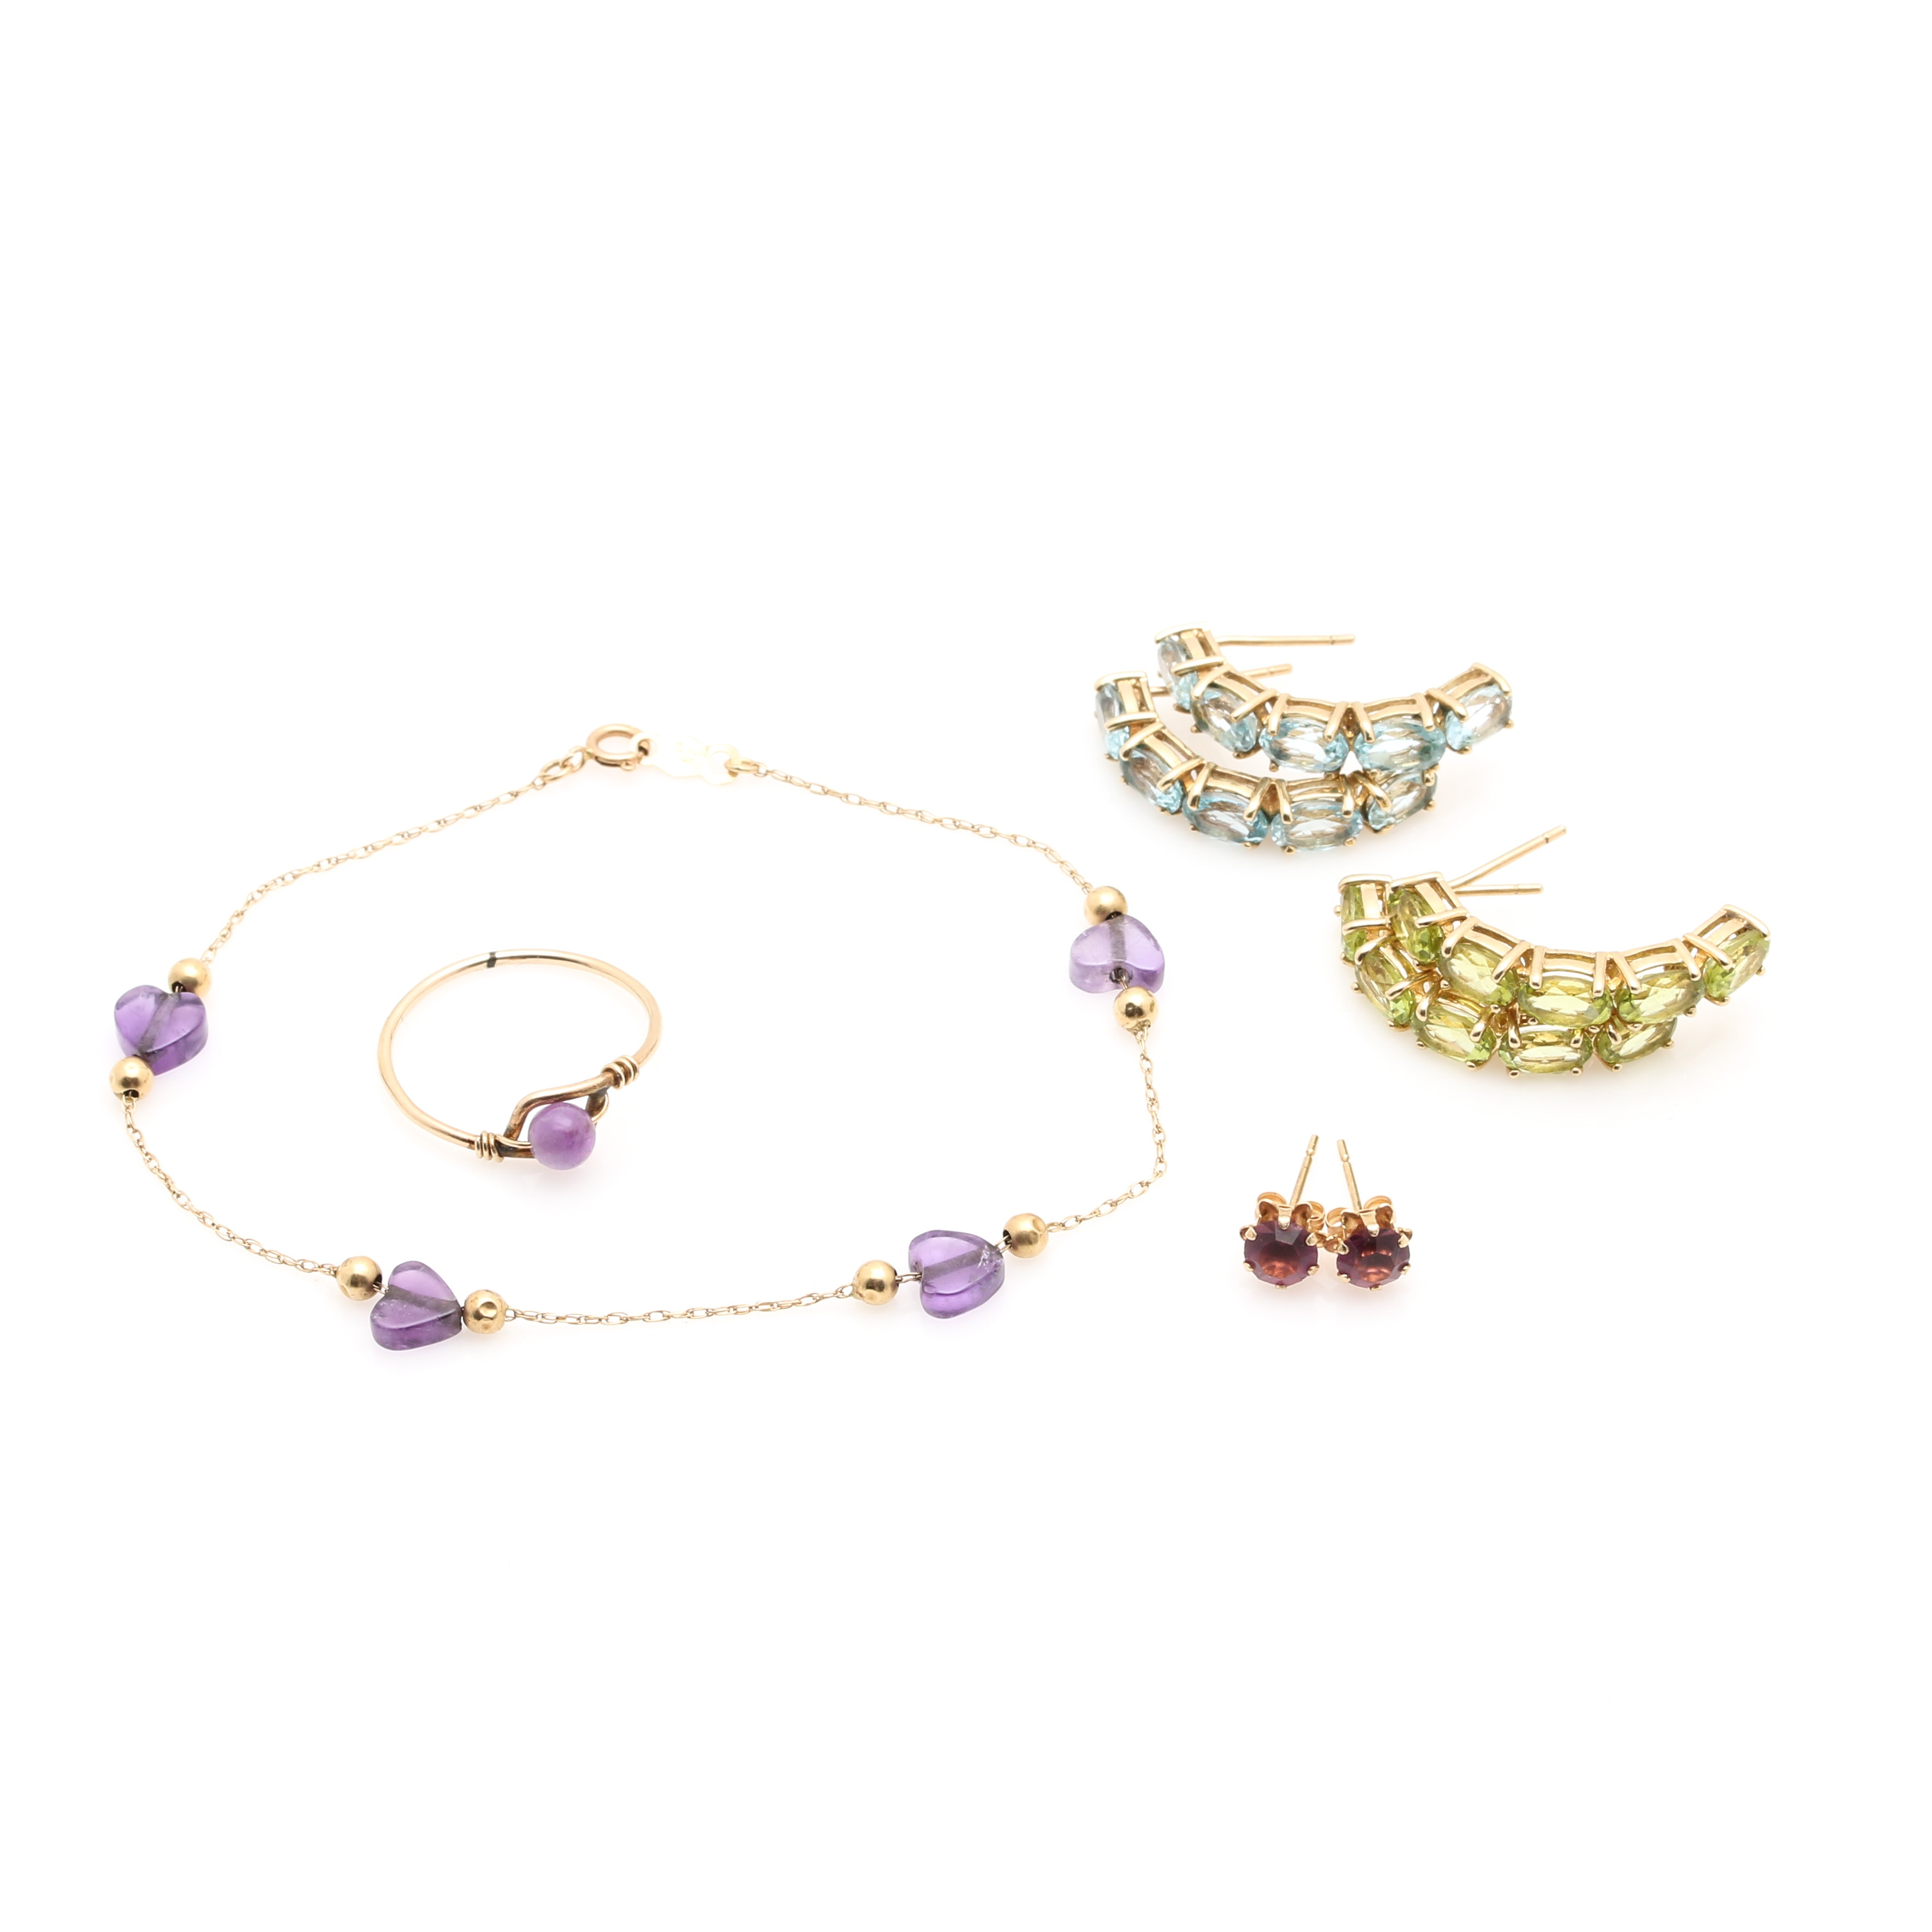 10K and 14K Yellow Gold Jewelry Assortment Including Gemstones